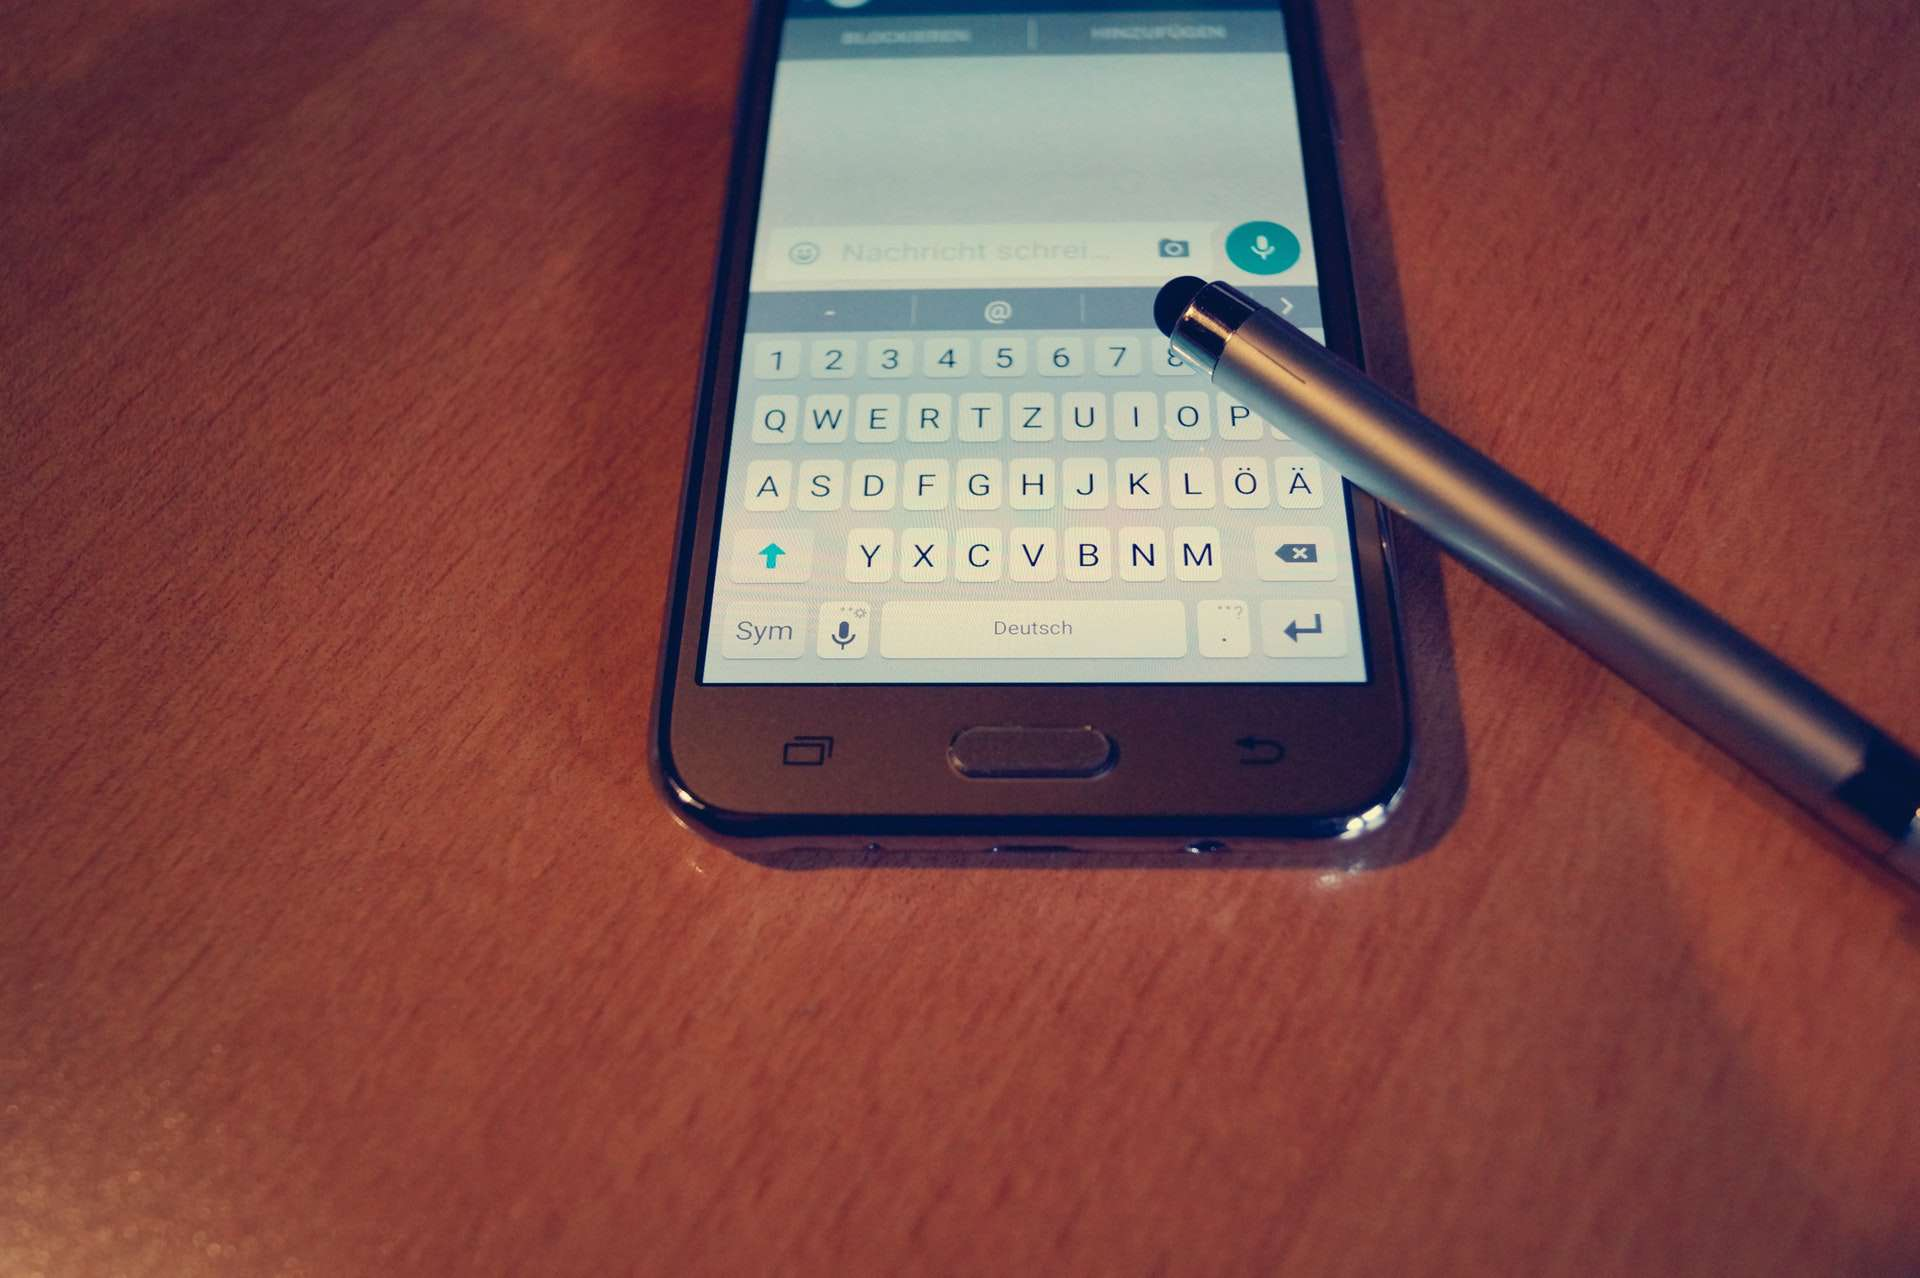 A smartphone and stylus.